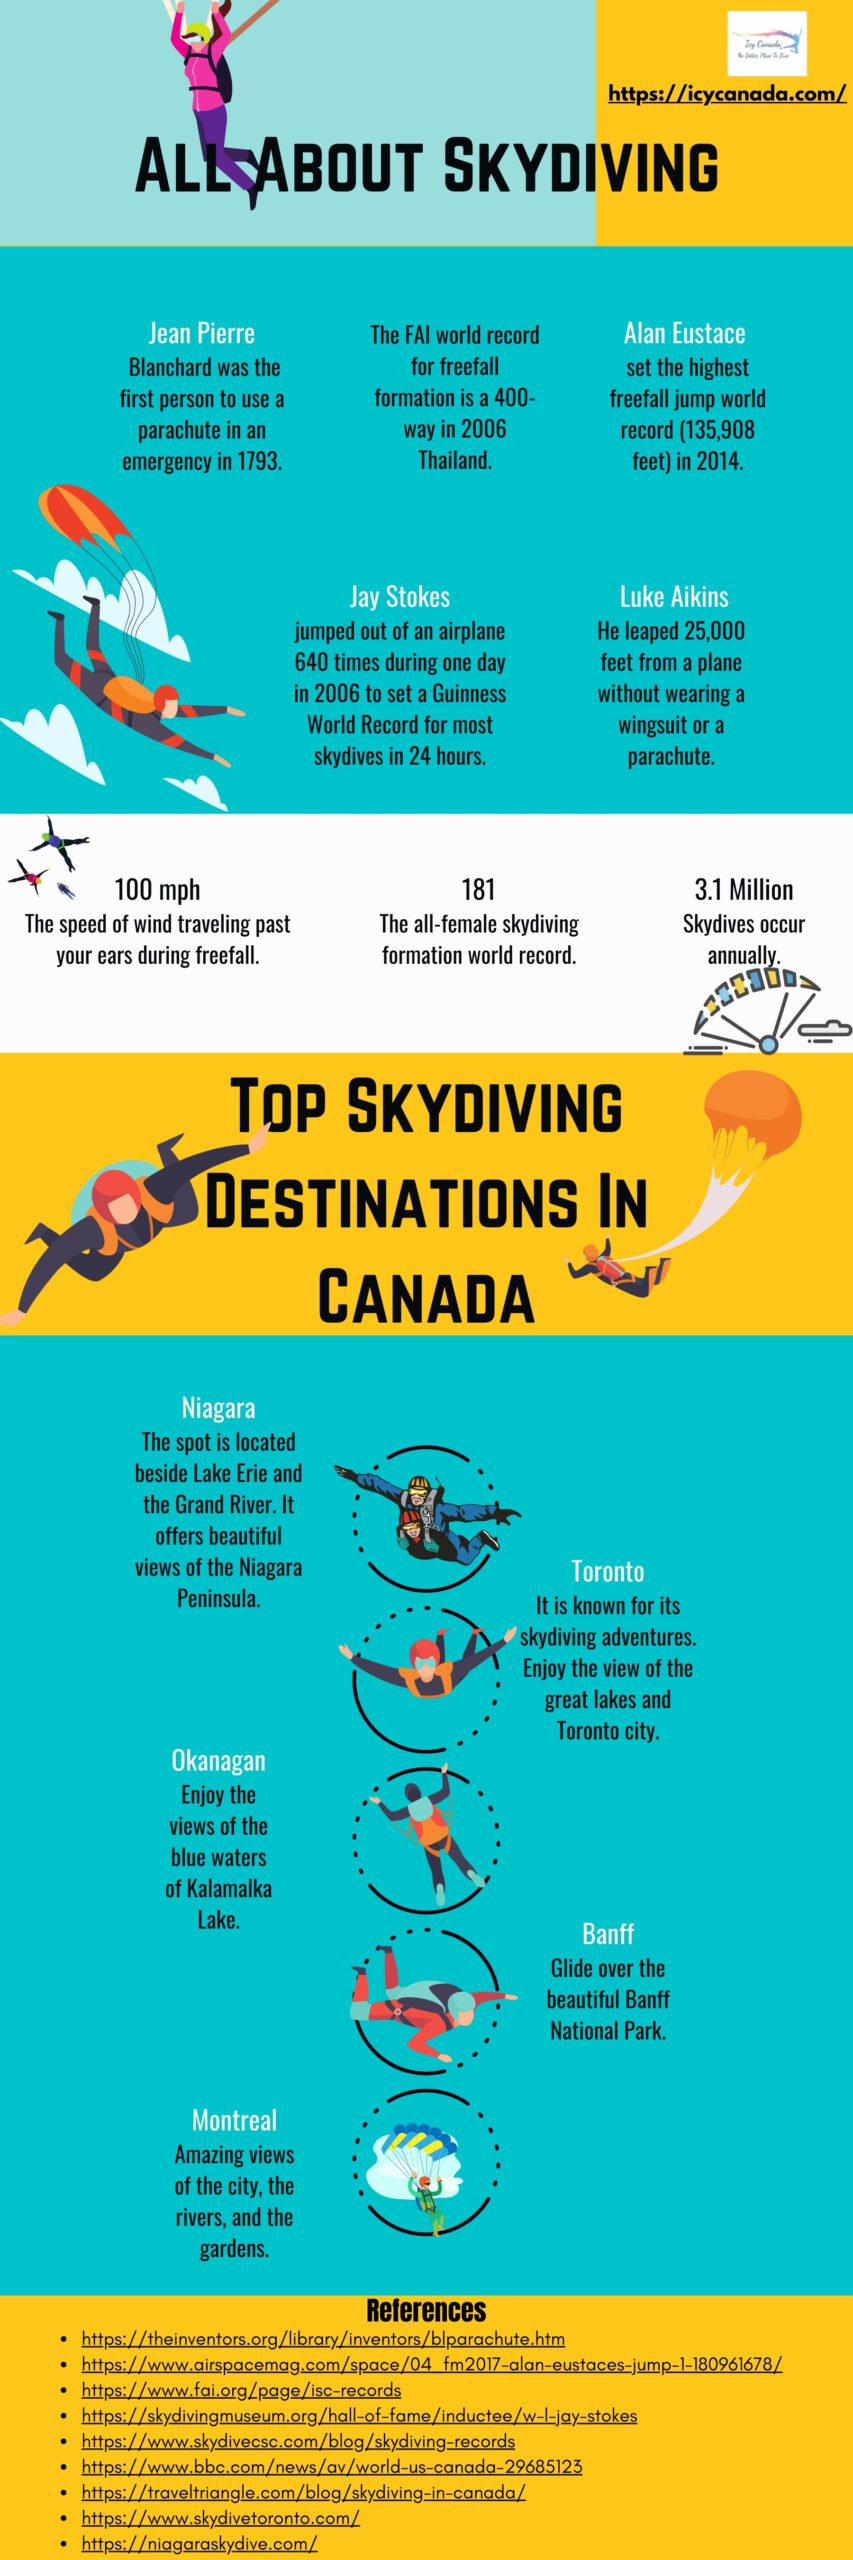 All About Skydiving